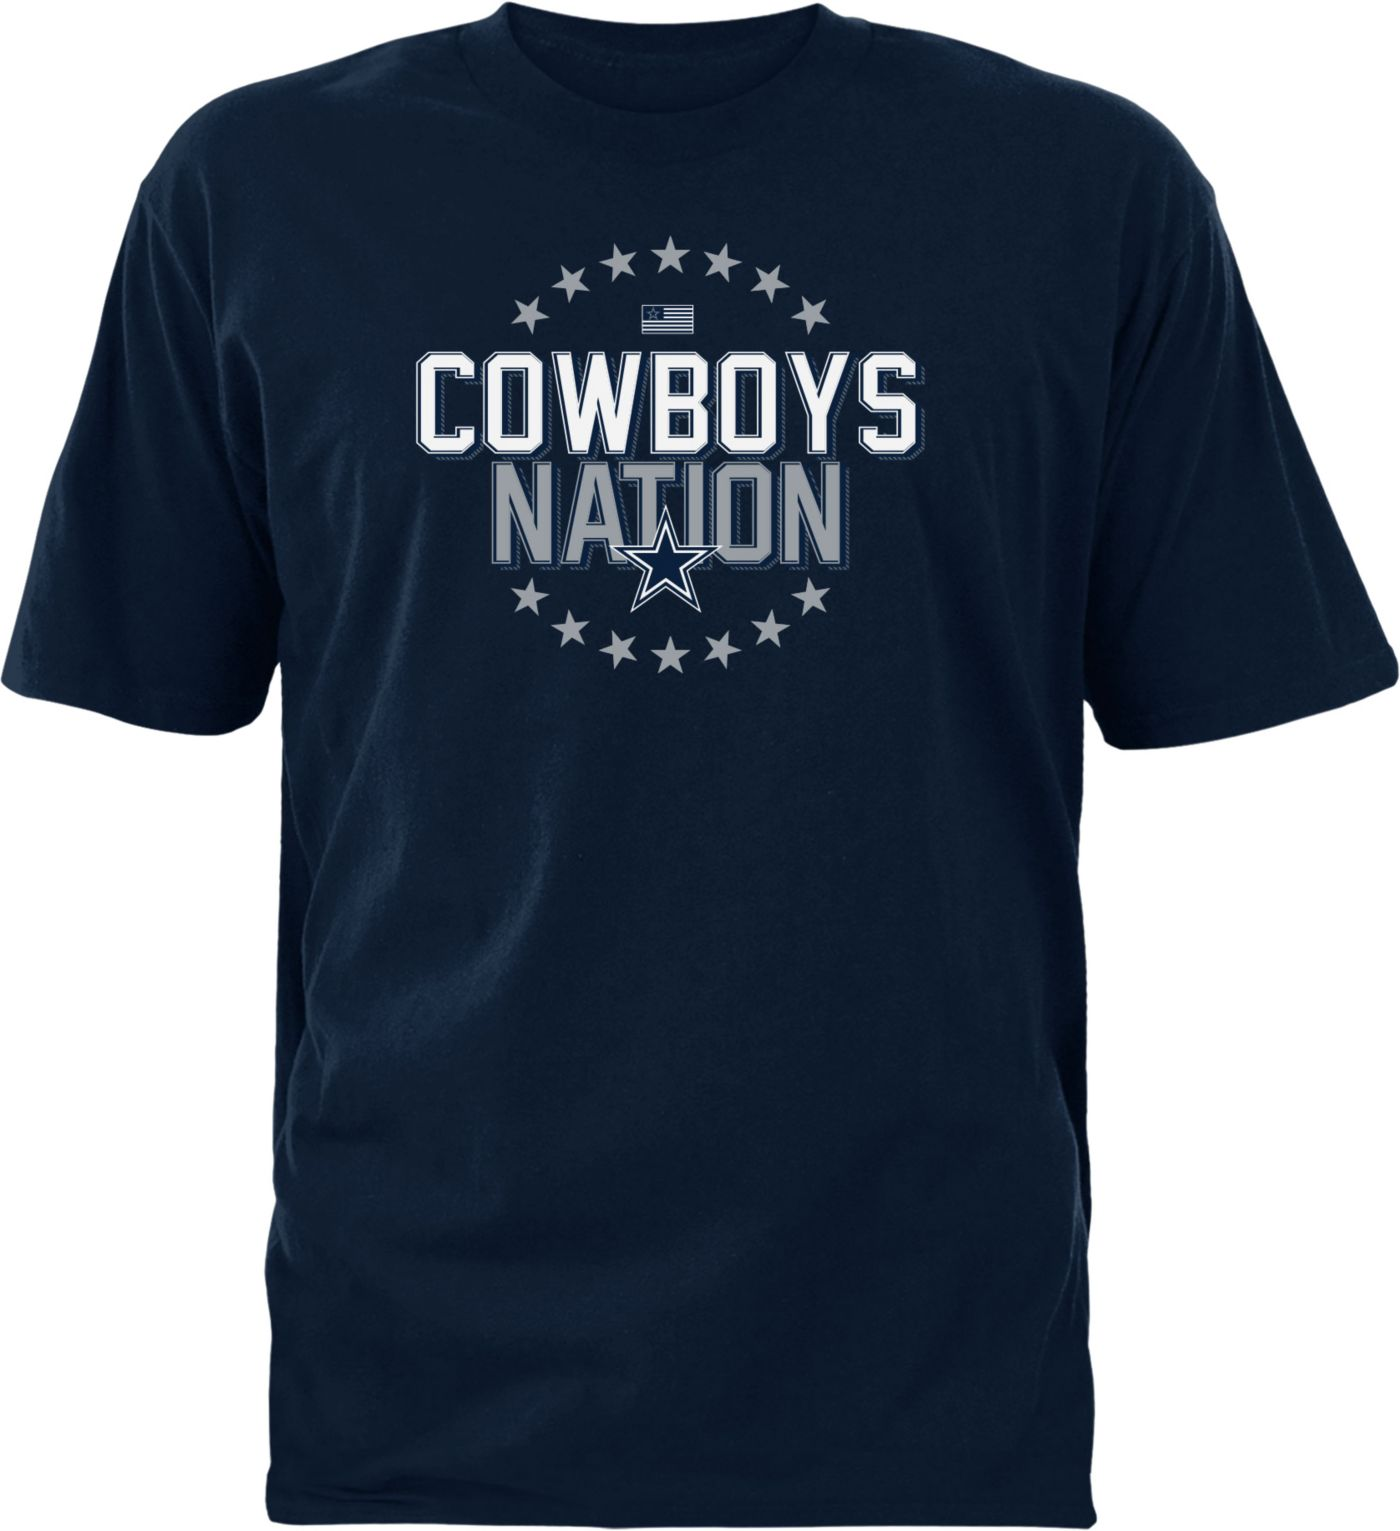 Dallas Cowboys Merchandising Men's Cowboys Nation Navy T-Shirt